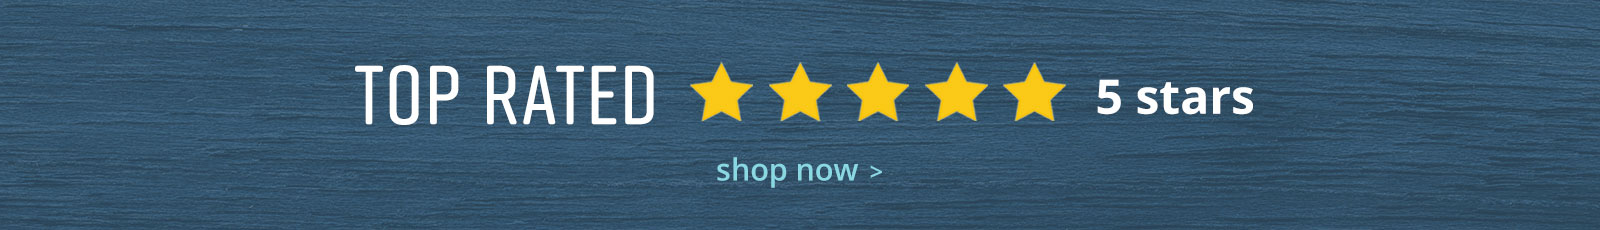 Shop Top Rated Products